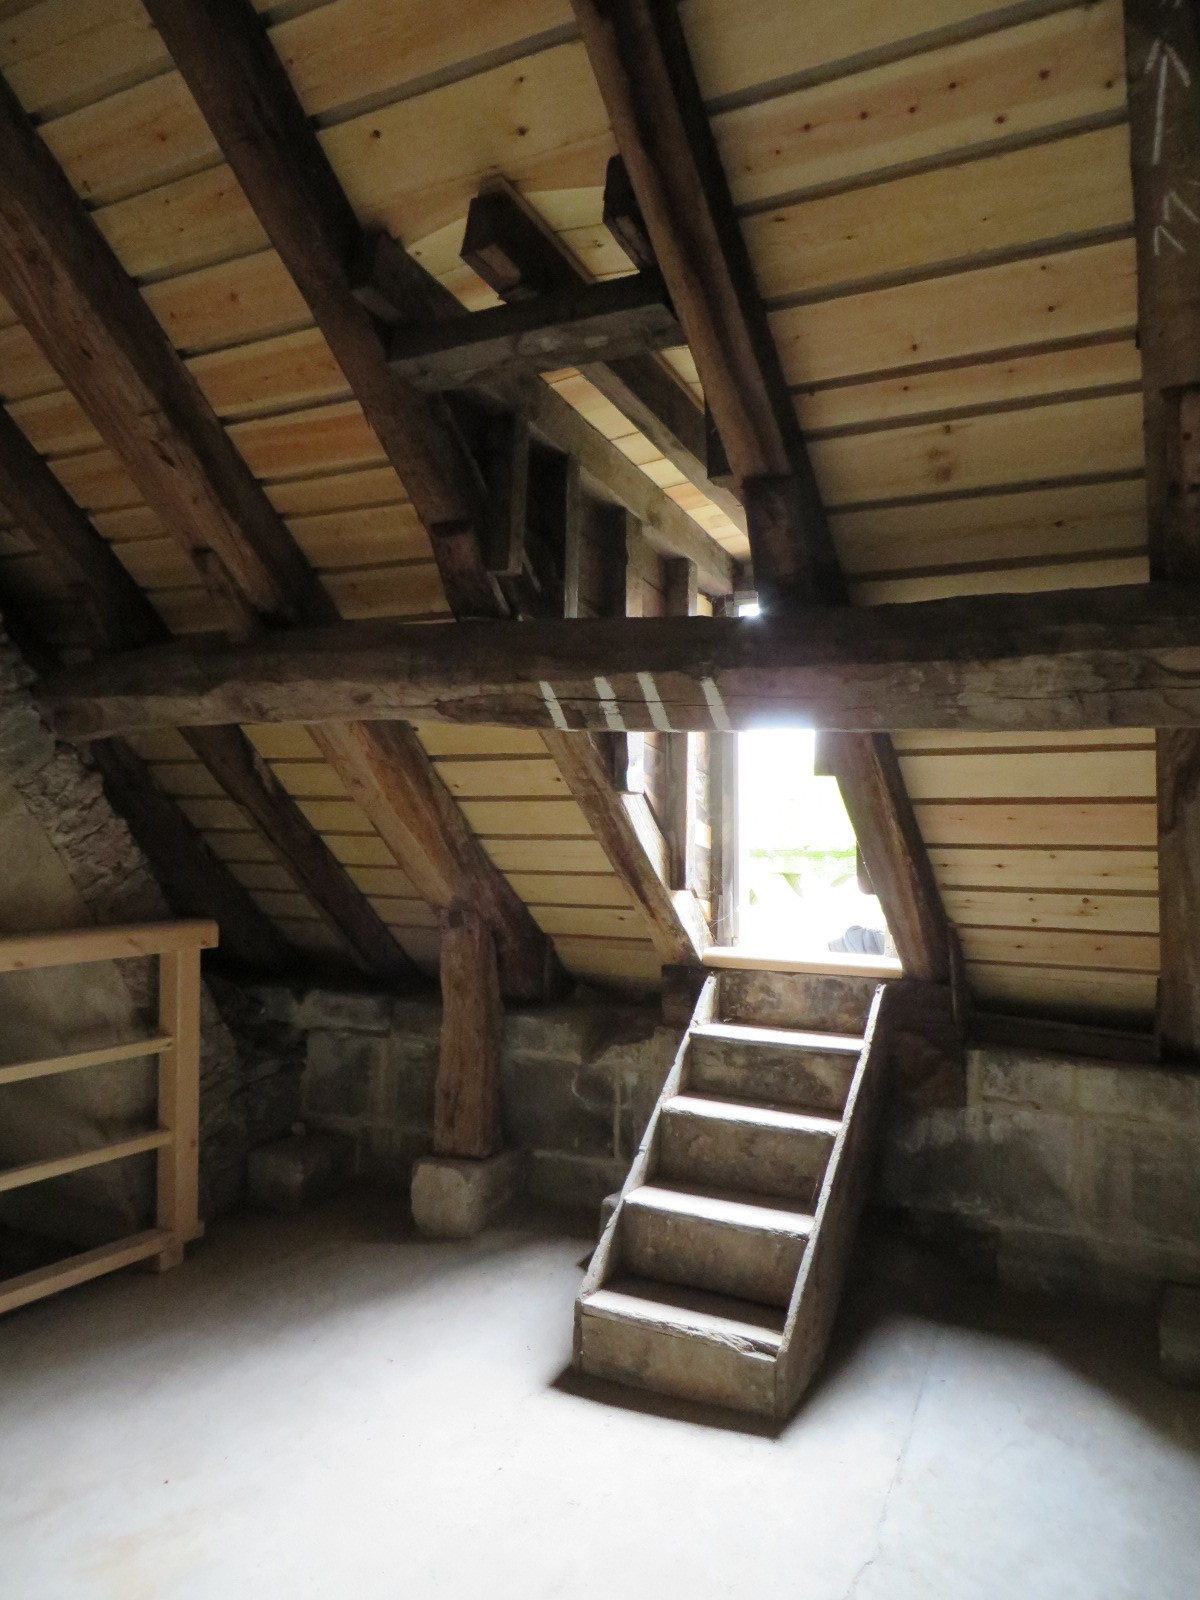 On completion: Internal roof void